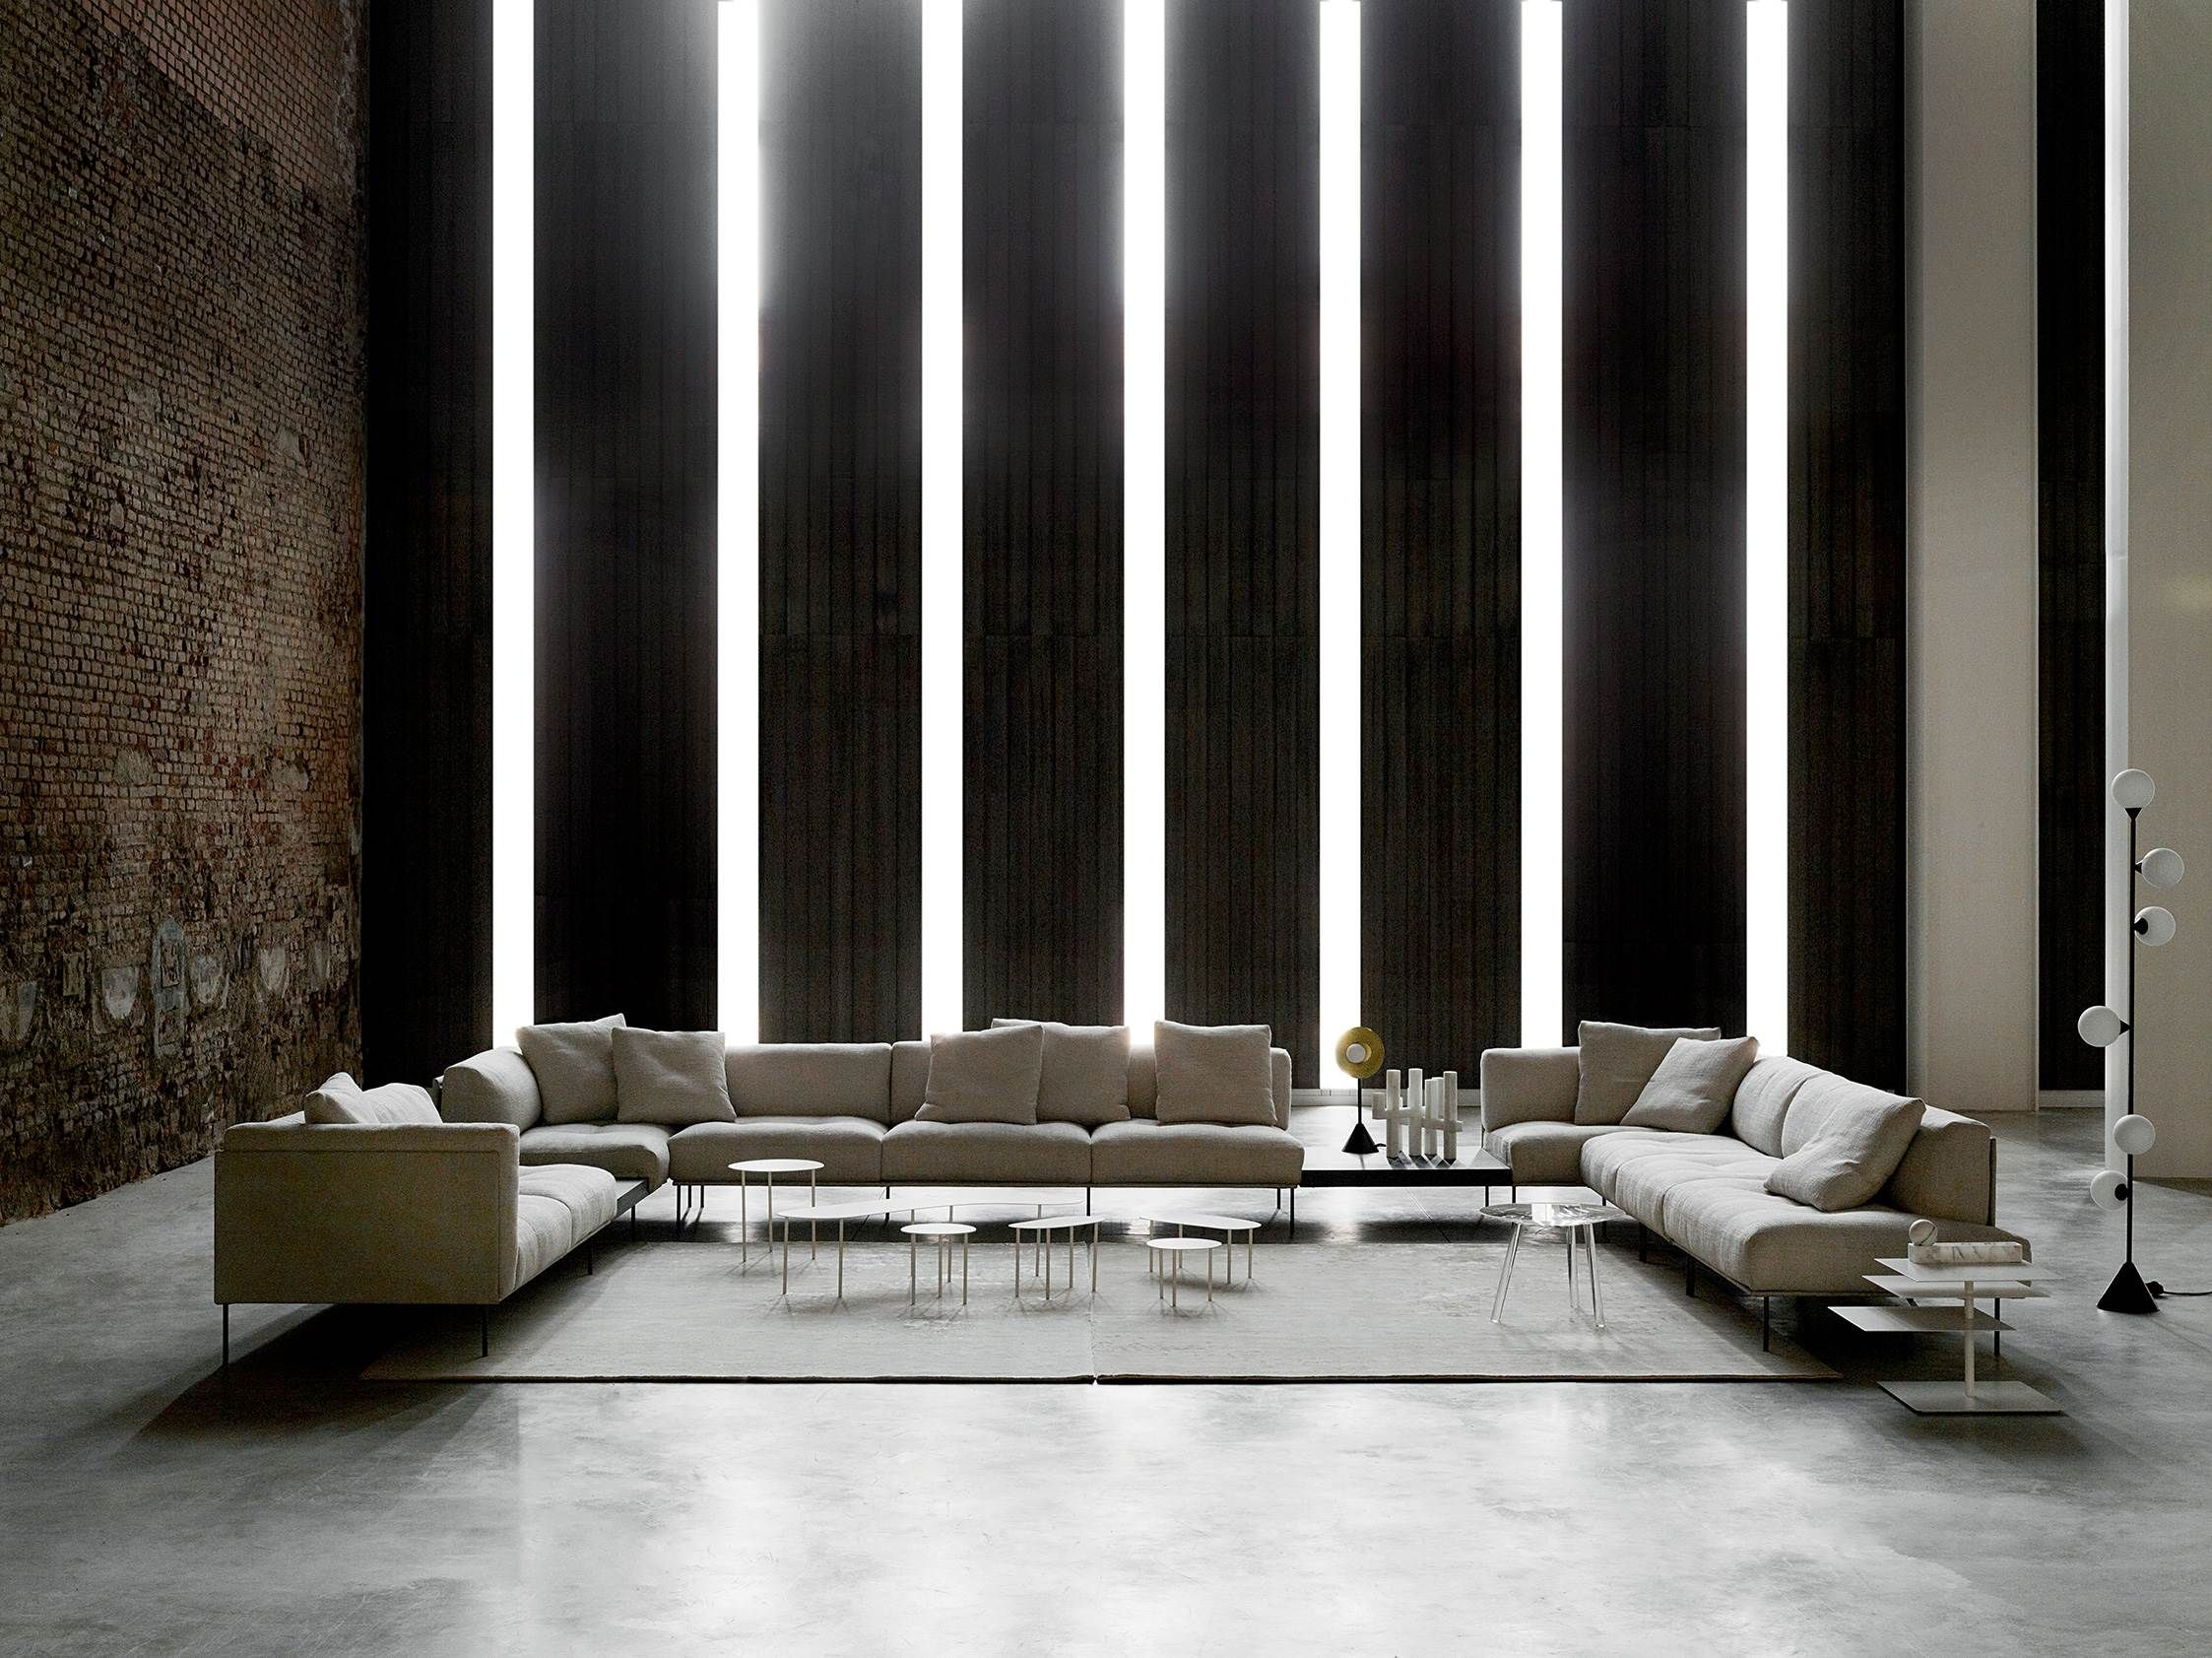 Living Divani The Wall Sofa Rod System By Piero Lissoni For Living Divani The Ever Popular